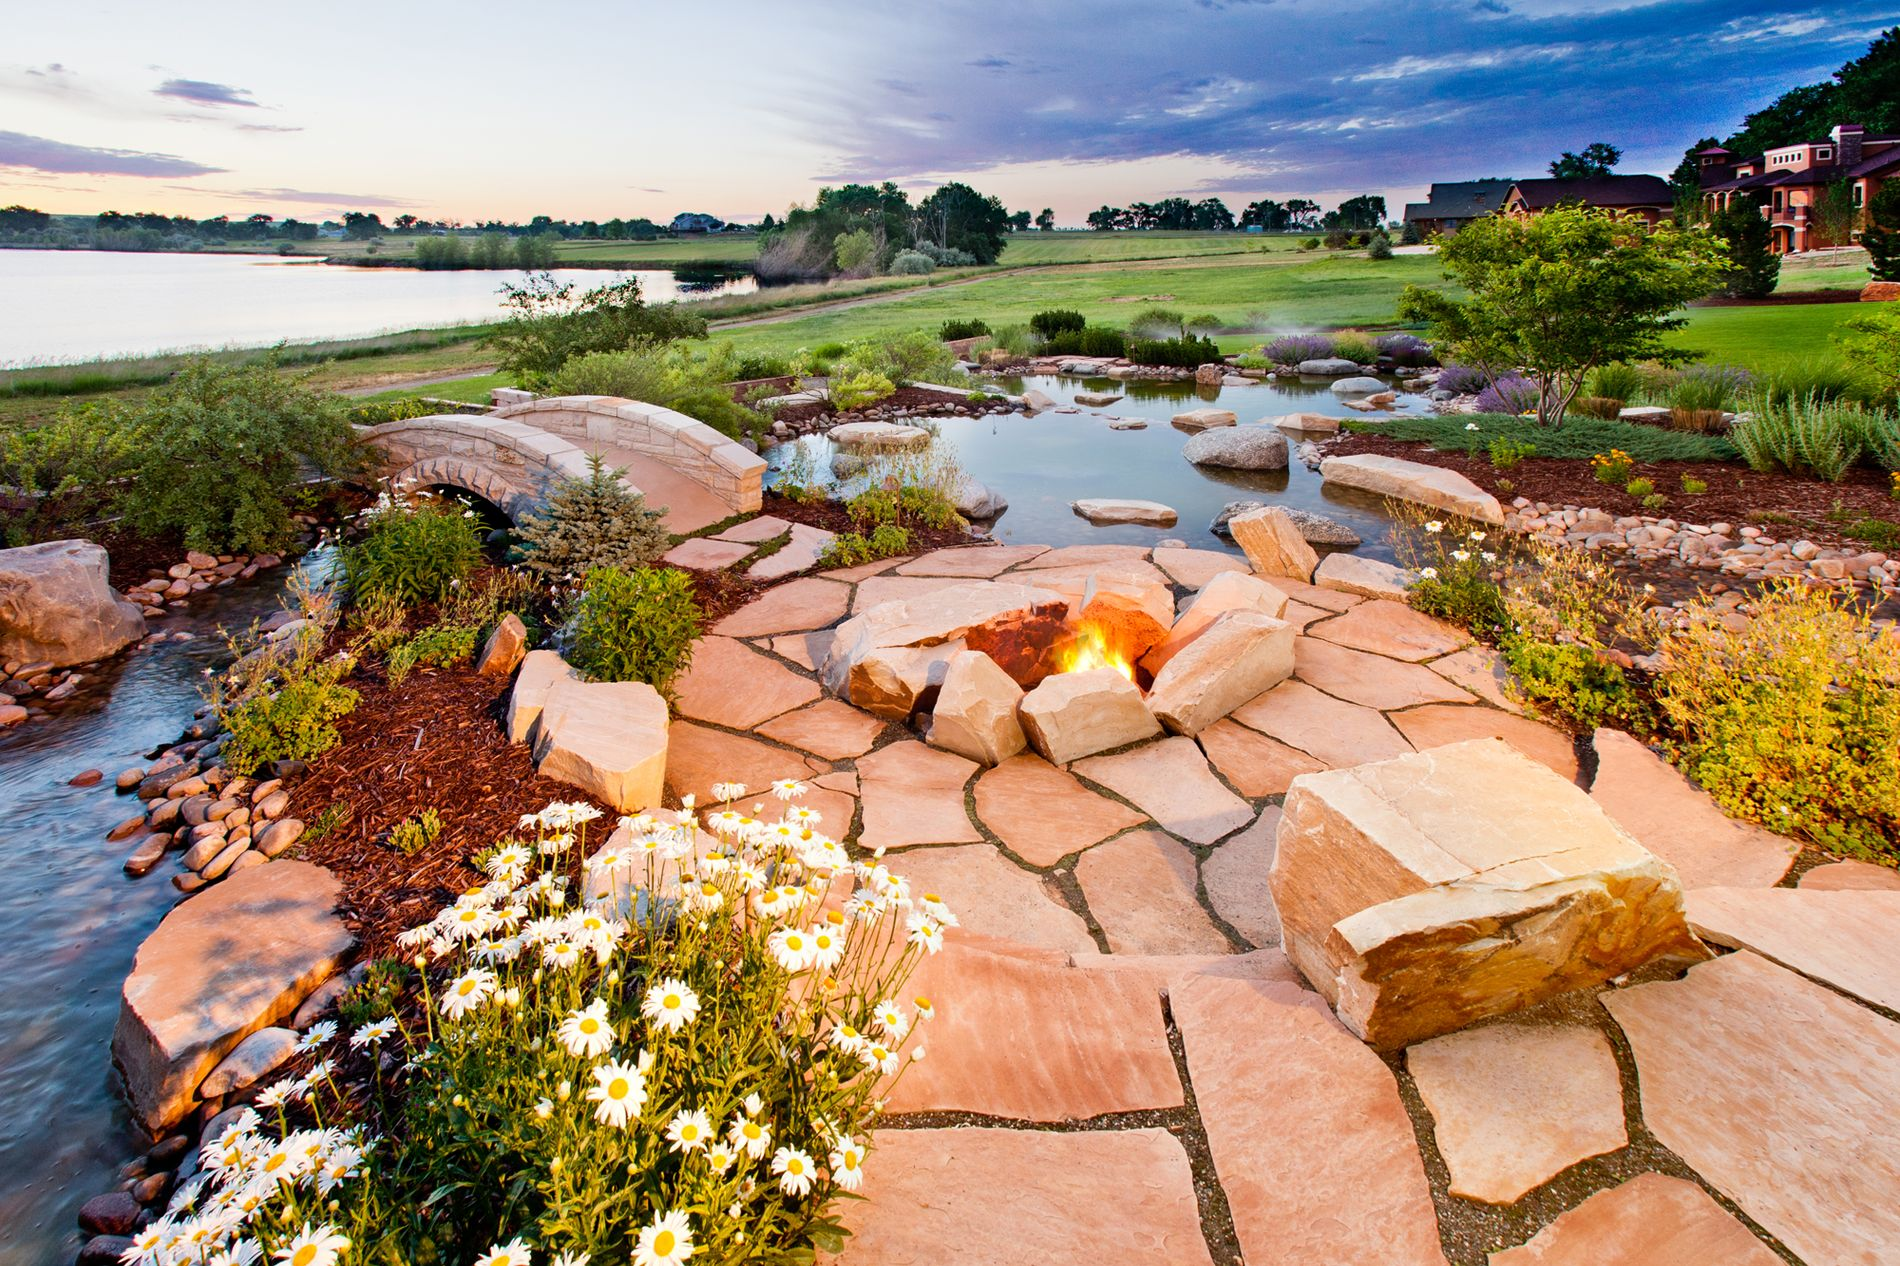 Wood burning fire pit with water feature and masonry bridges